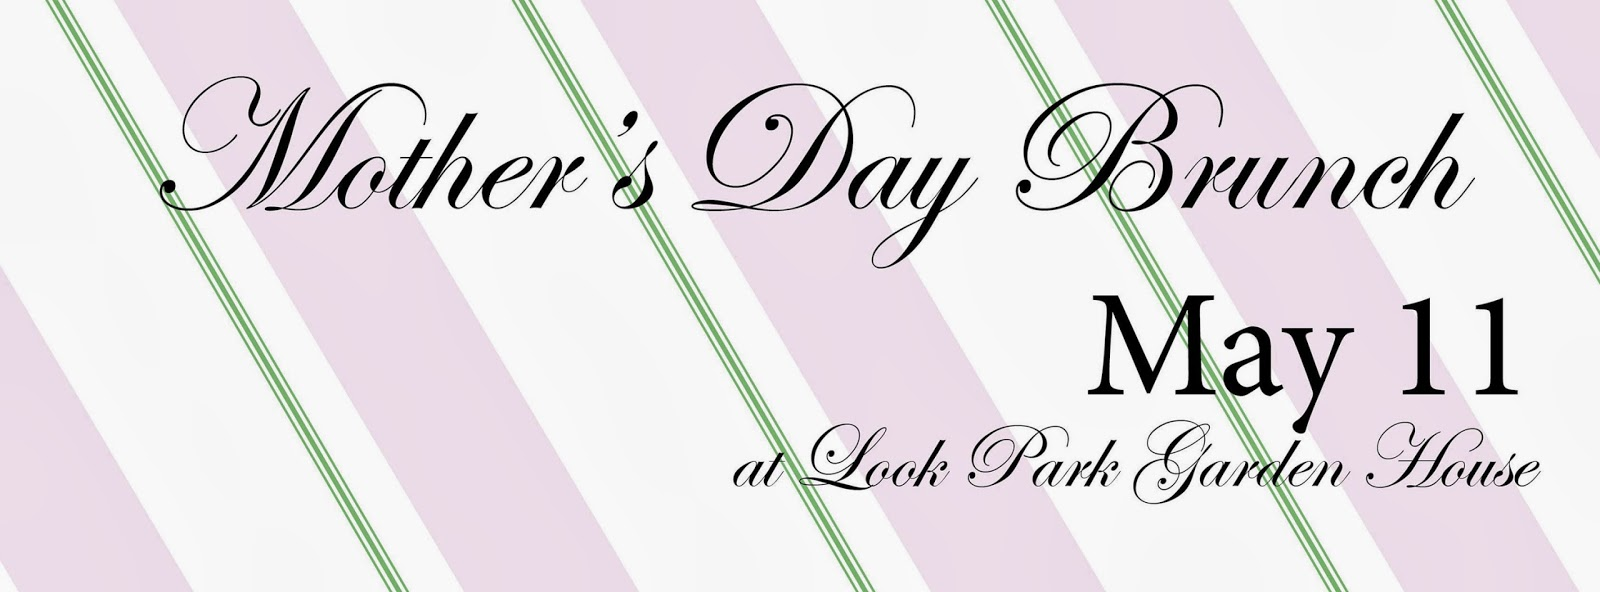 Mother's Day Brunch May 11 at Look Park Garden House